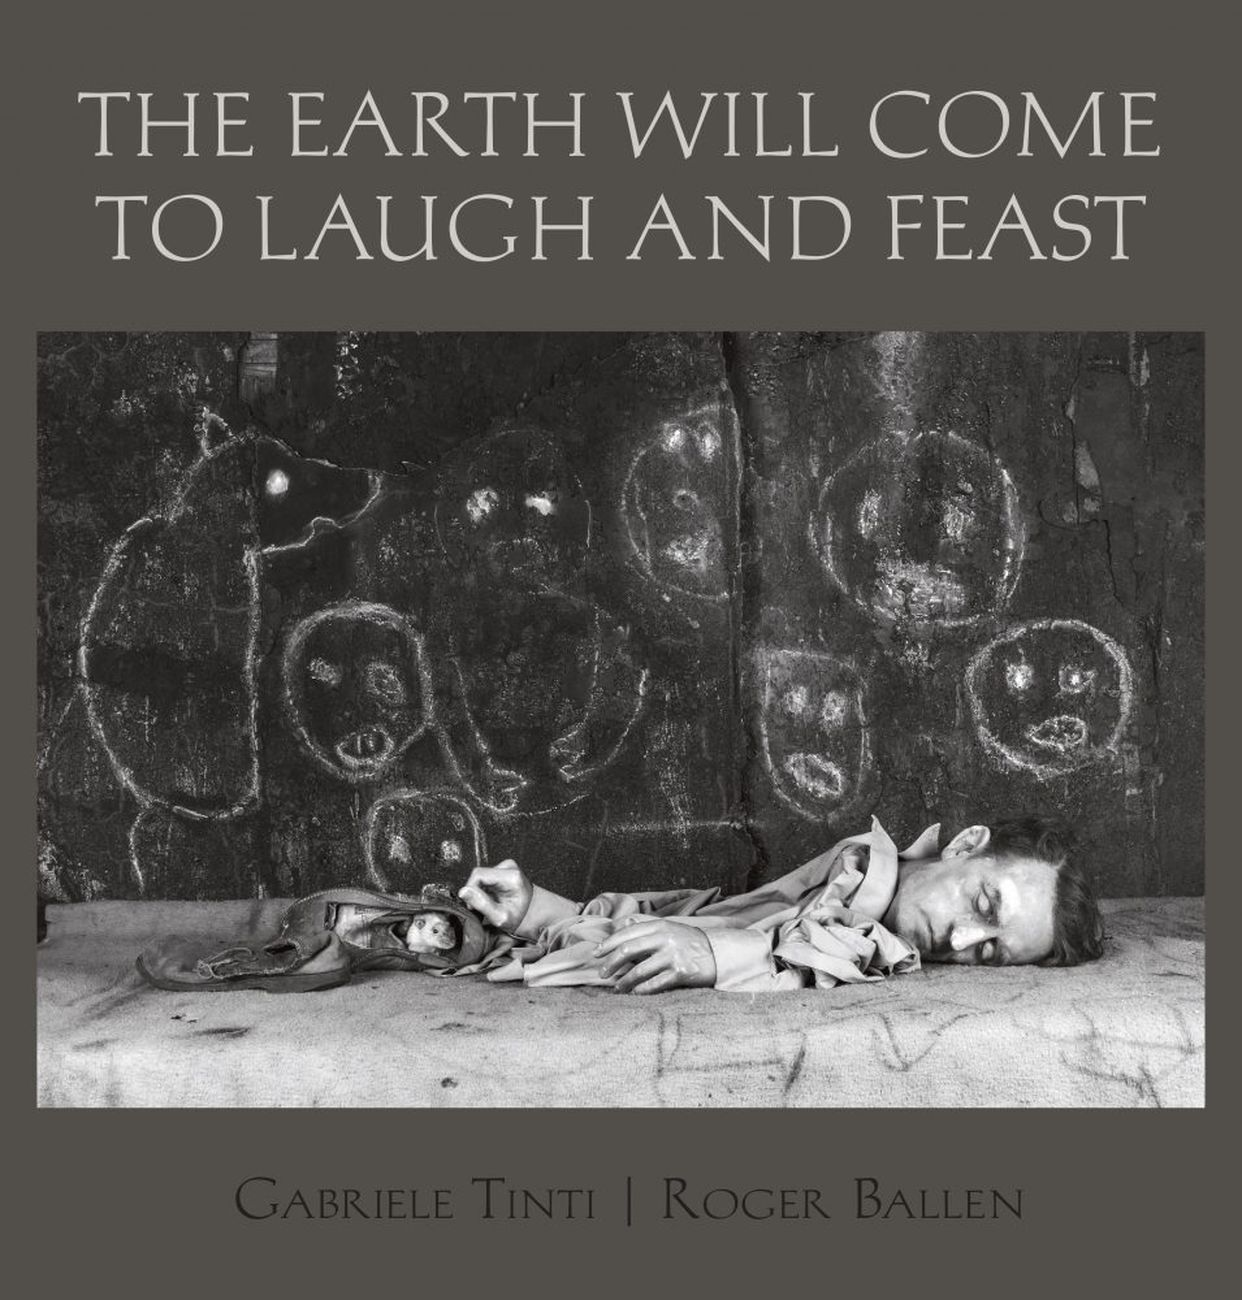 Gabriele Tinti & Roger Ballen – The Earth Will Come to Laugh and Feast (powerHouse Books, New York 2020)